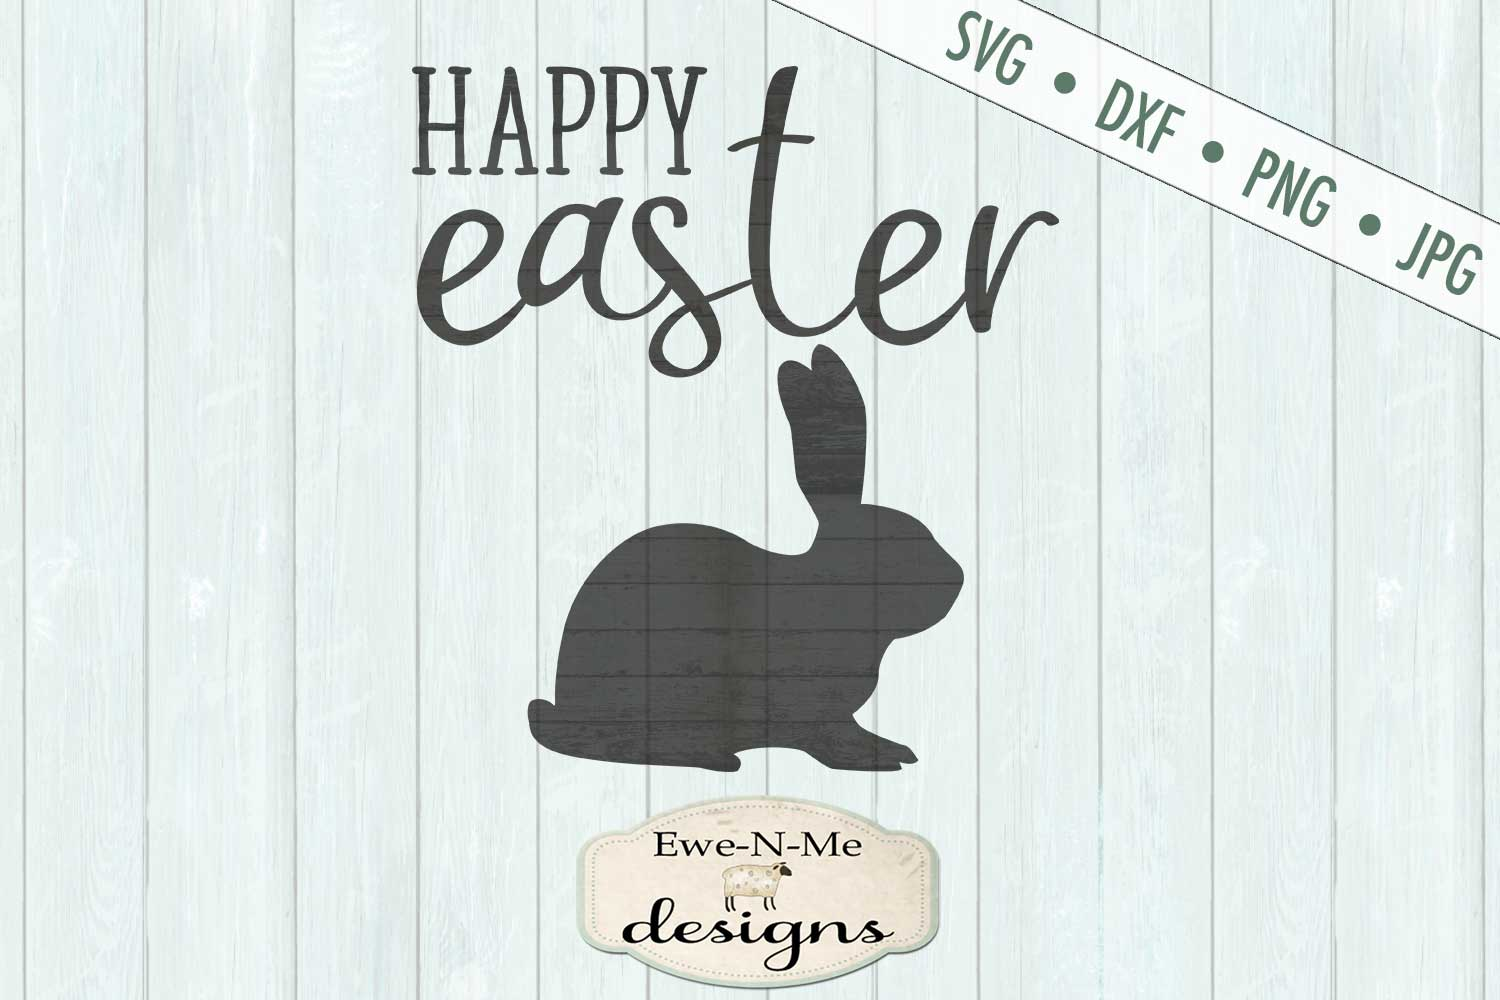 Happy Easter Bunny Easter Rabbit SVG DXF Cut File example image 2